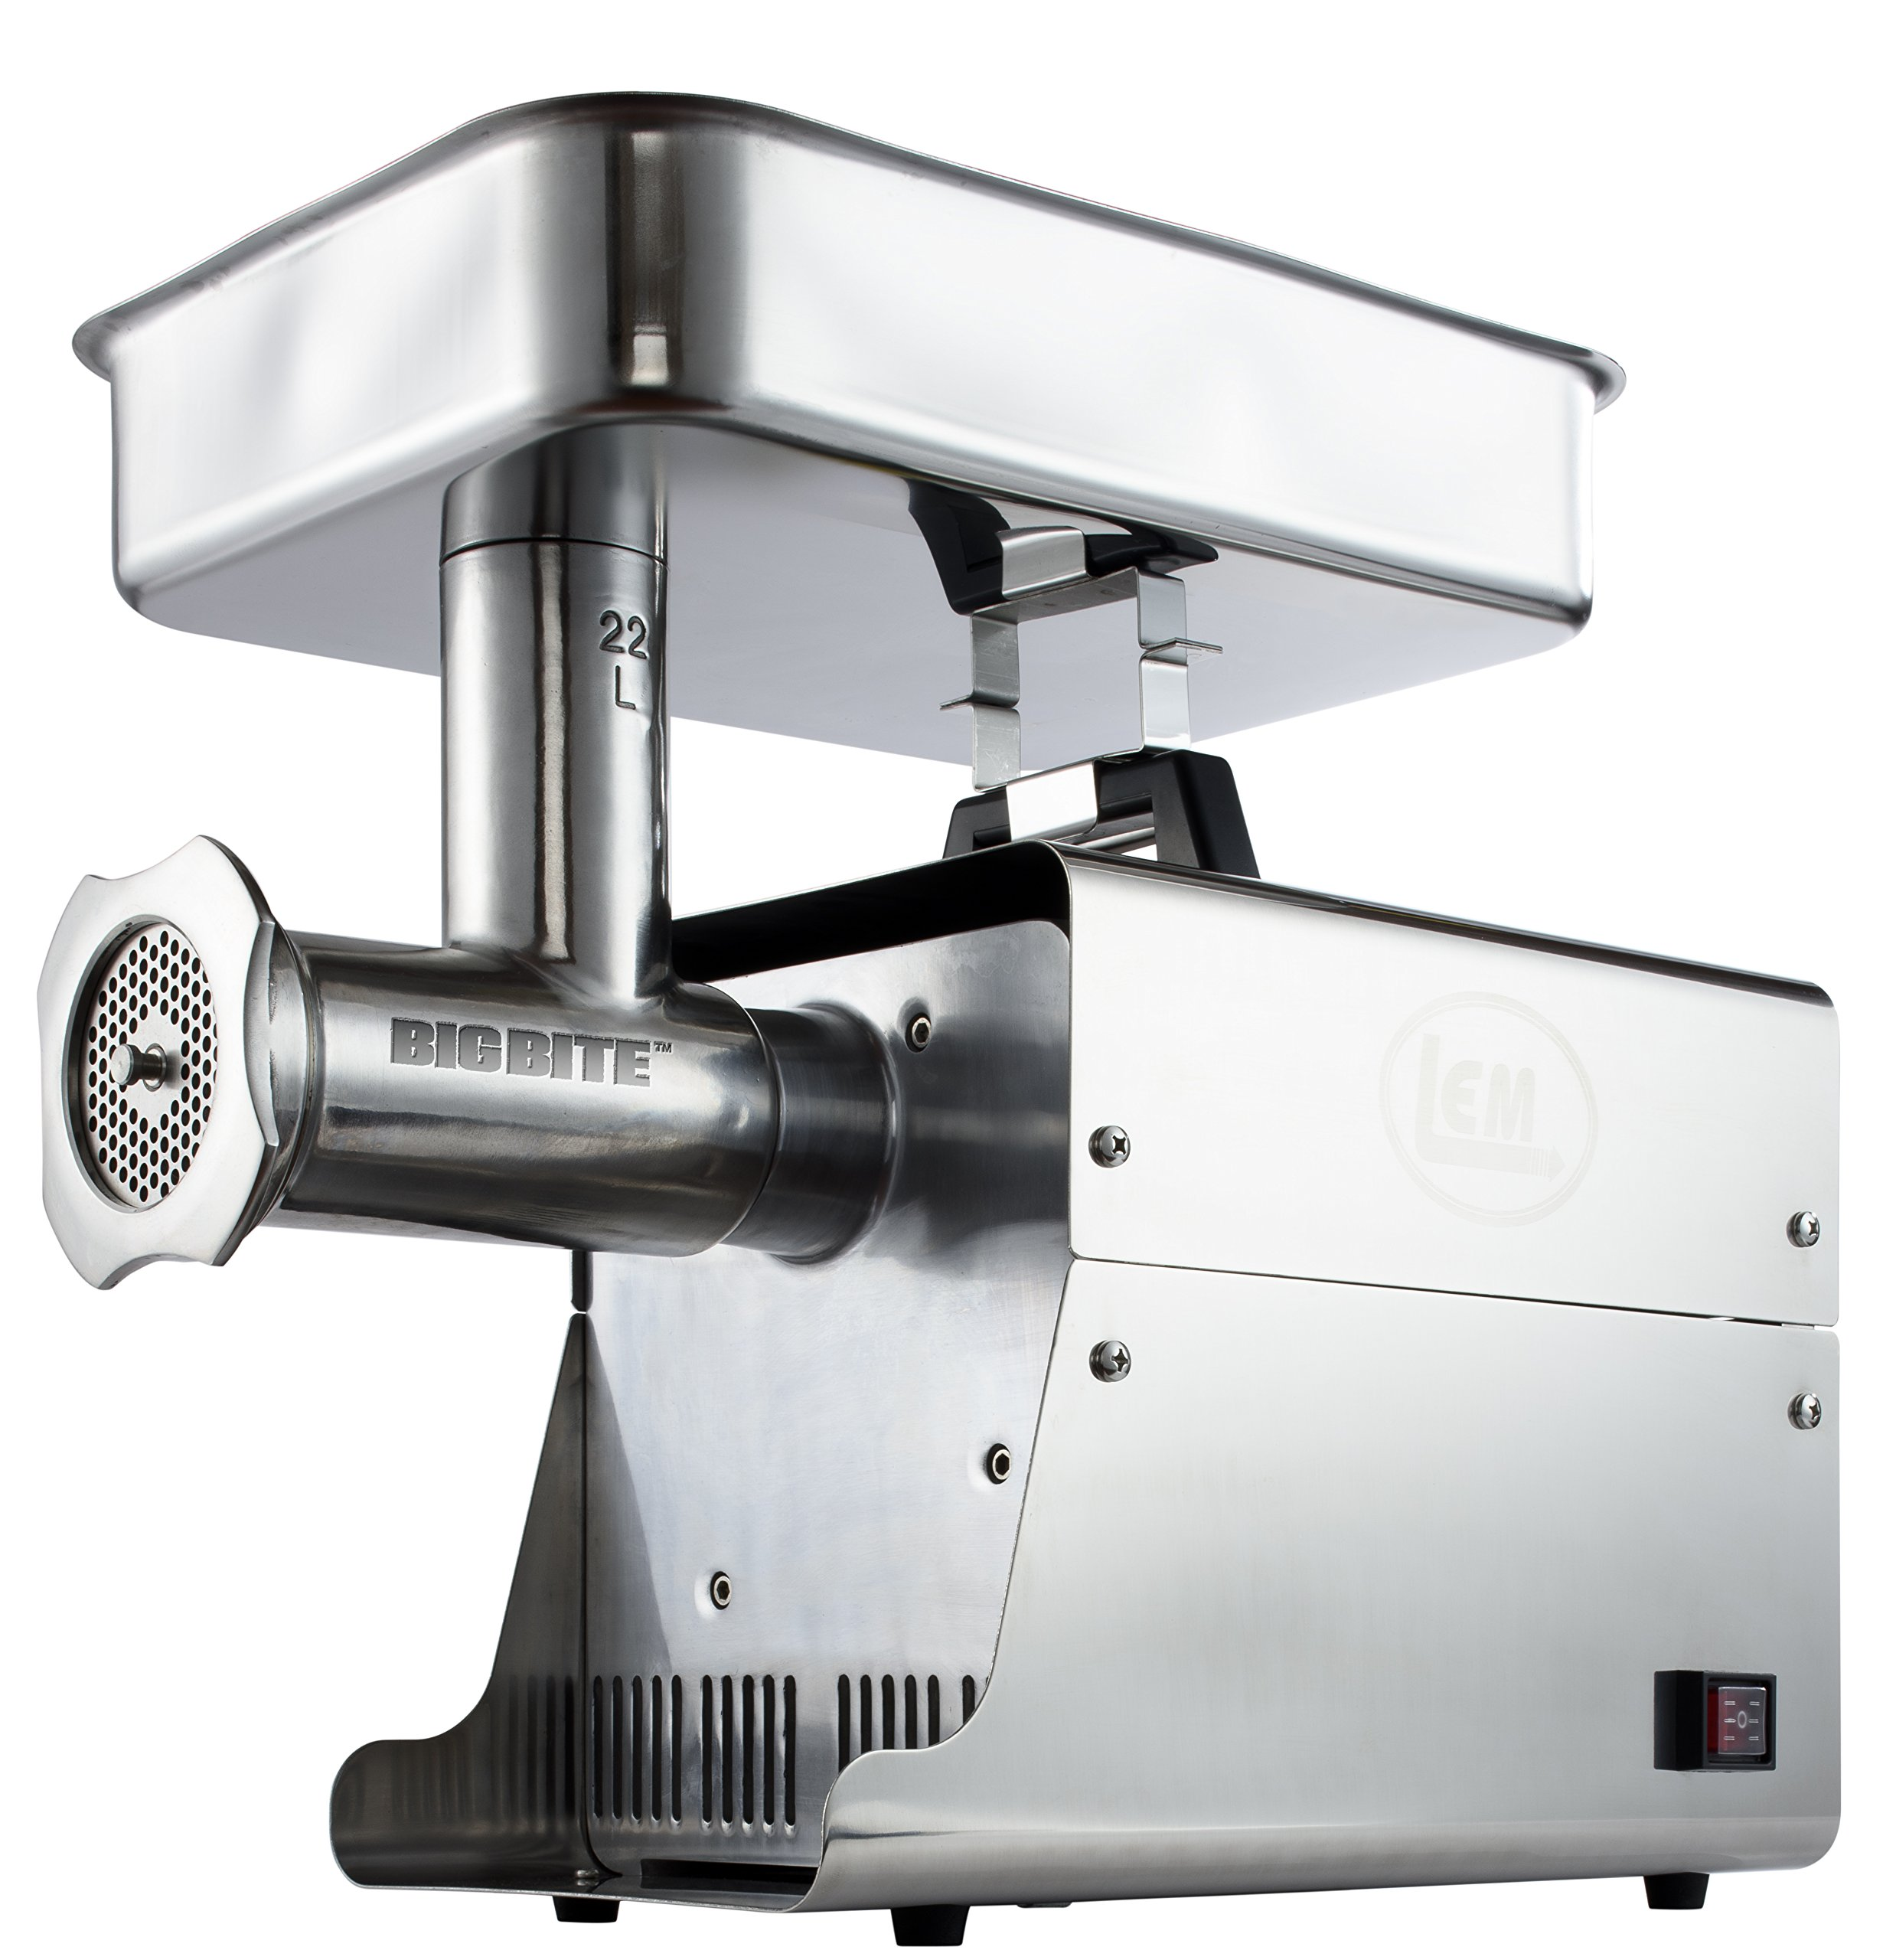 LEM Products W781A Stainless Steel Big Bite Electric #22-Meat Grinder (1-HP) by LEM